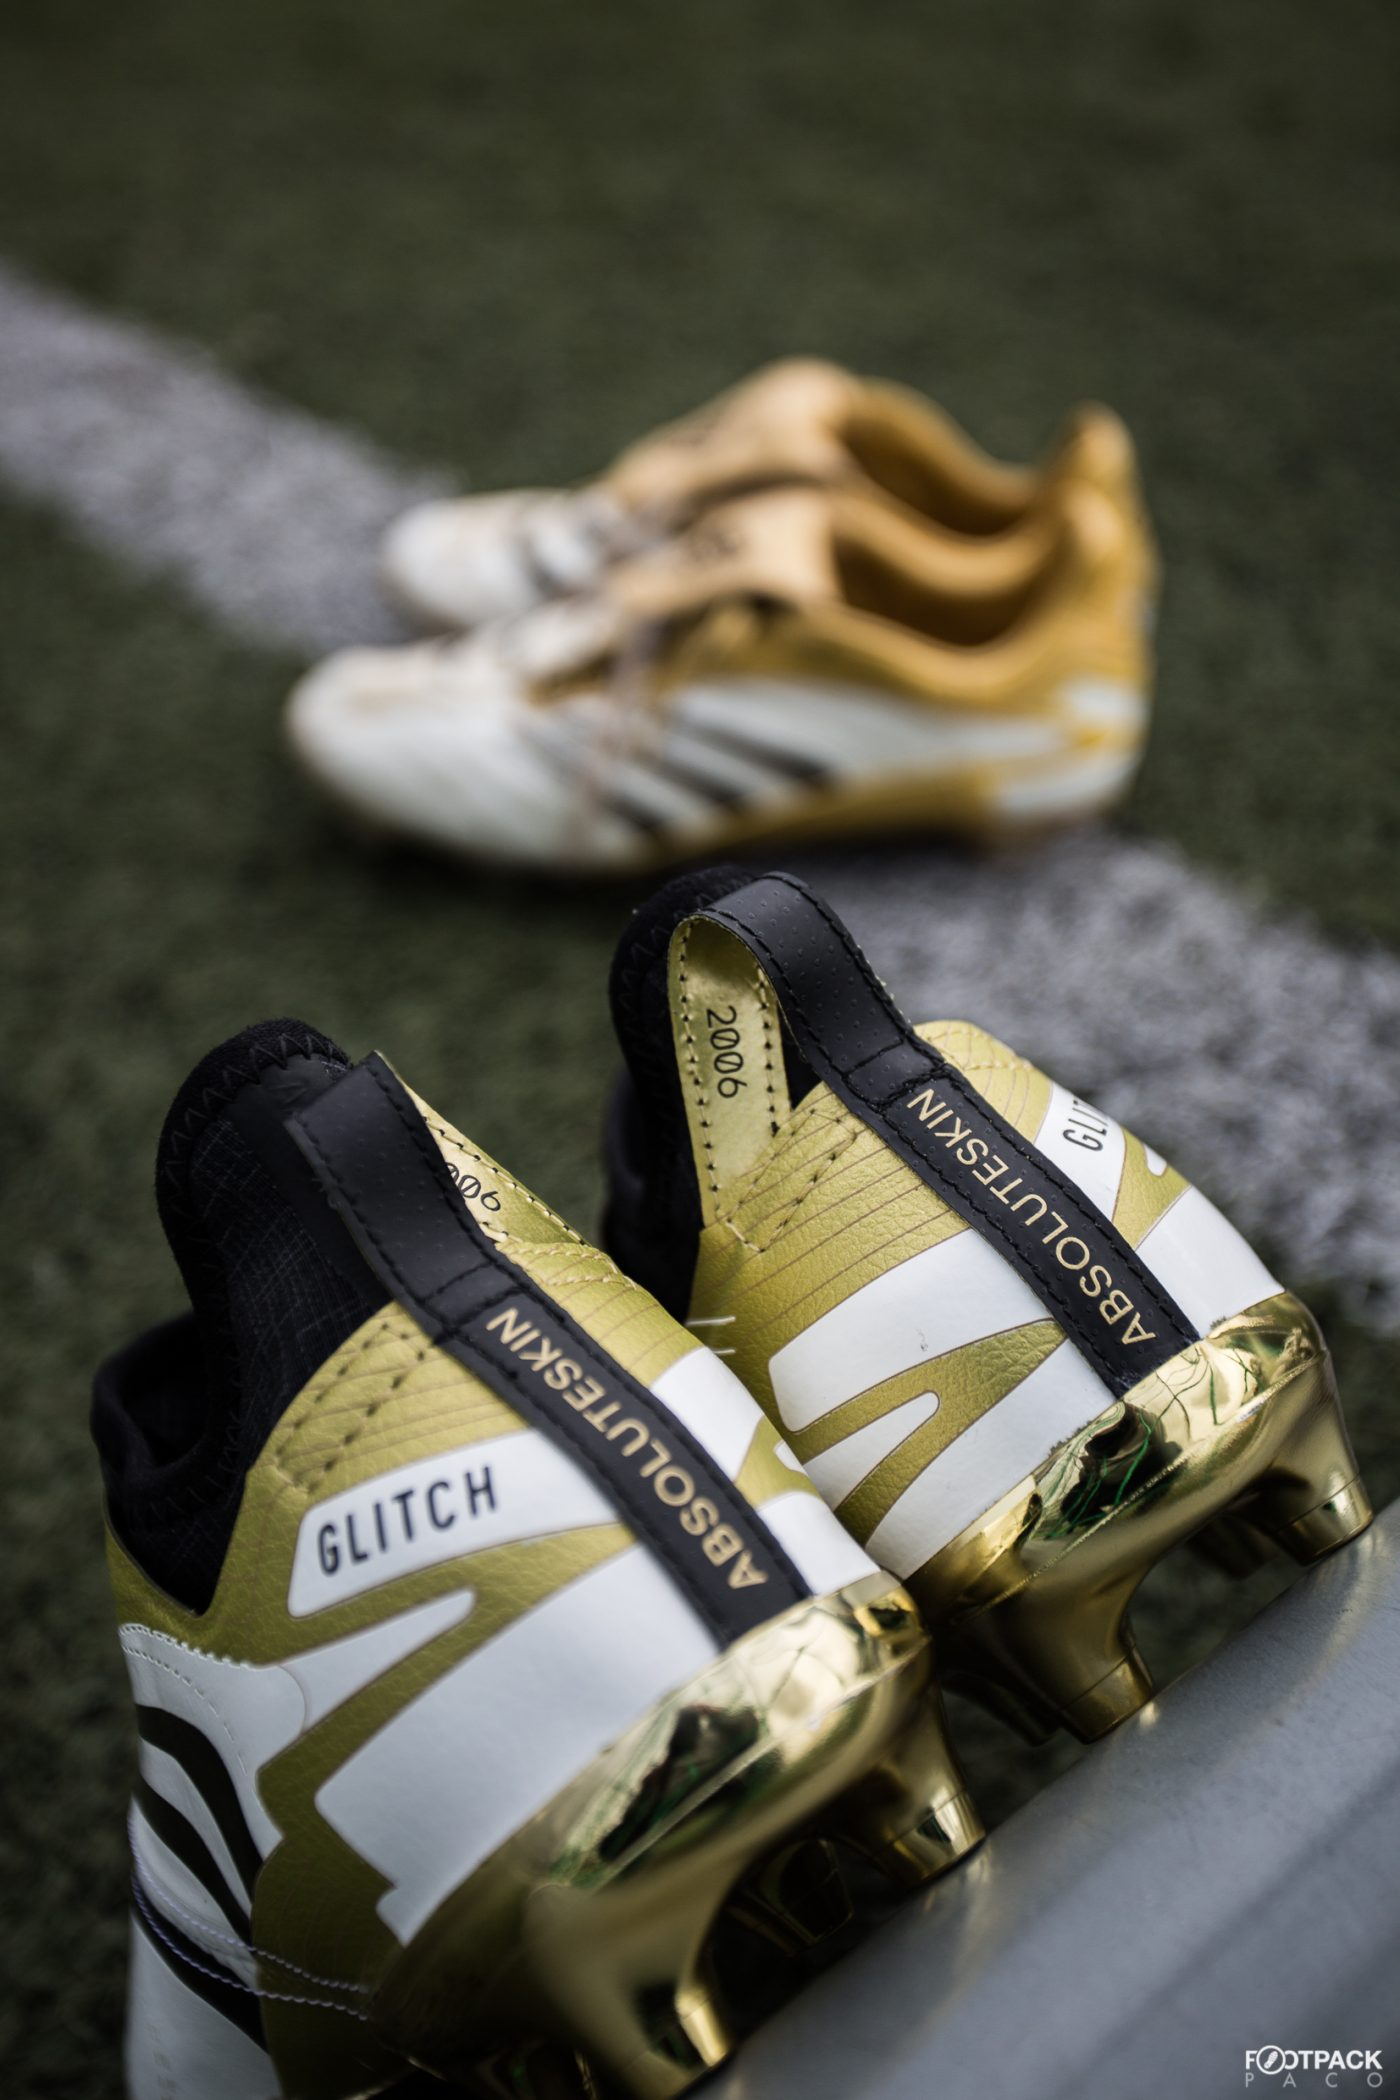 adidas-glitch-classic-pack-absoluteskin-predator-absolute-2006-footpack-4